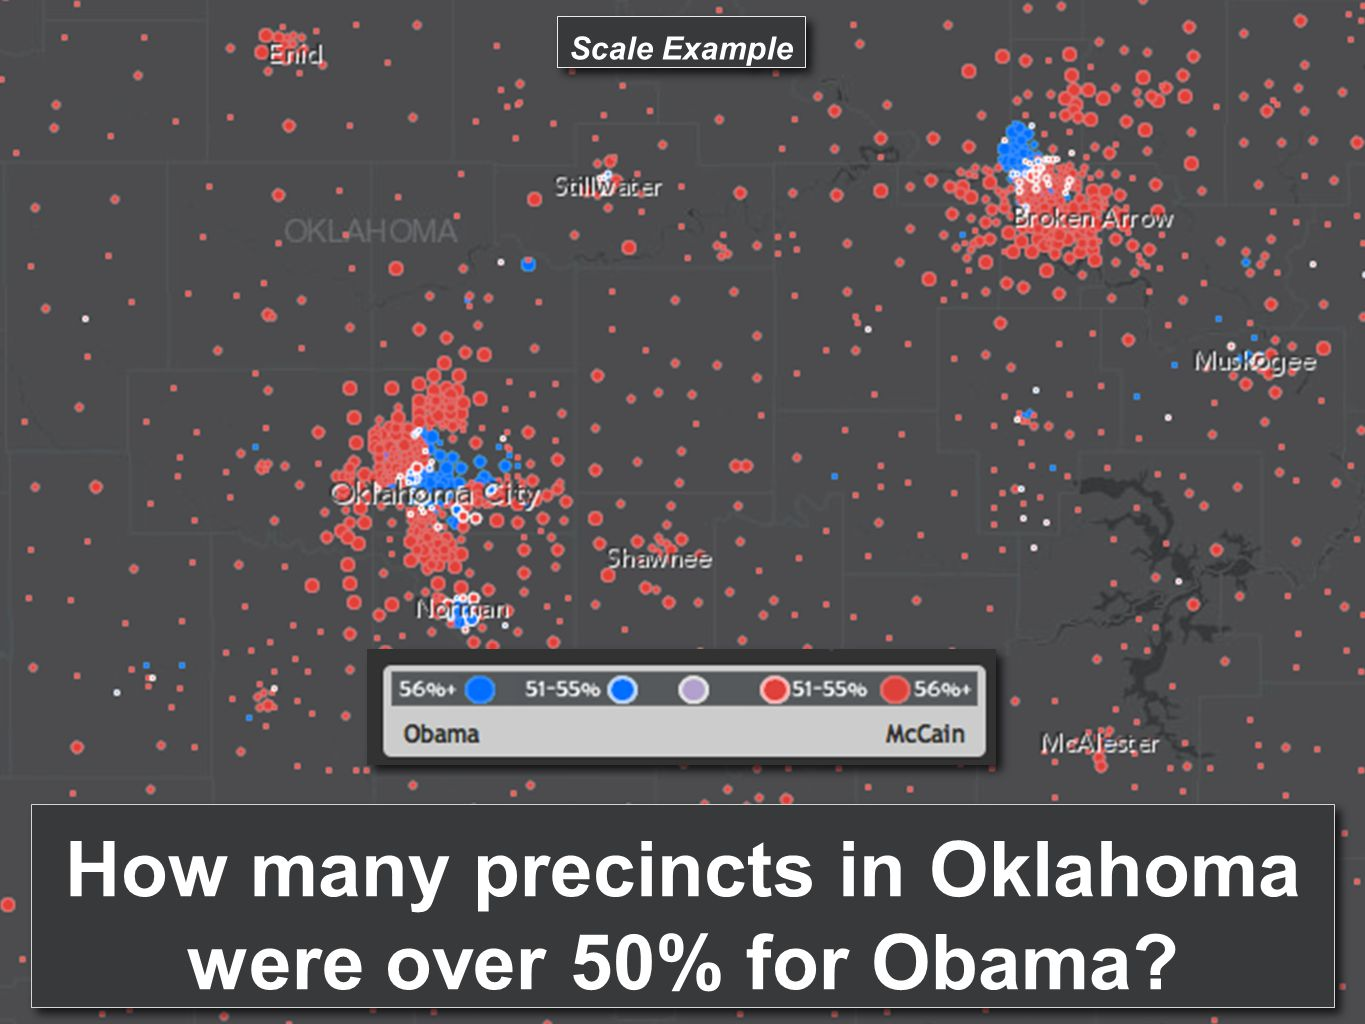 How many precincts in Oklahoma were over 50% for Obama? Scale Example